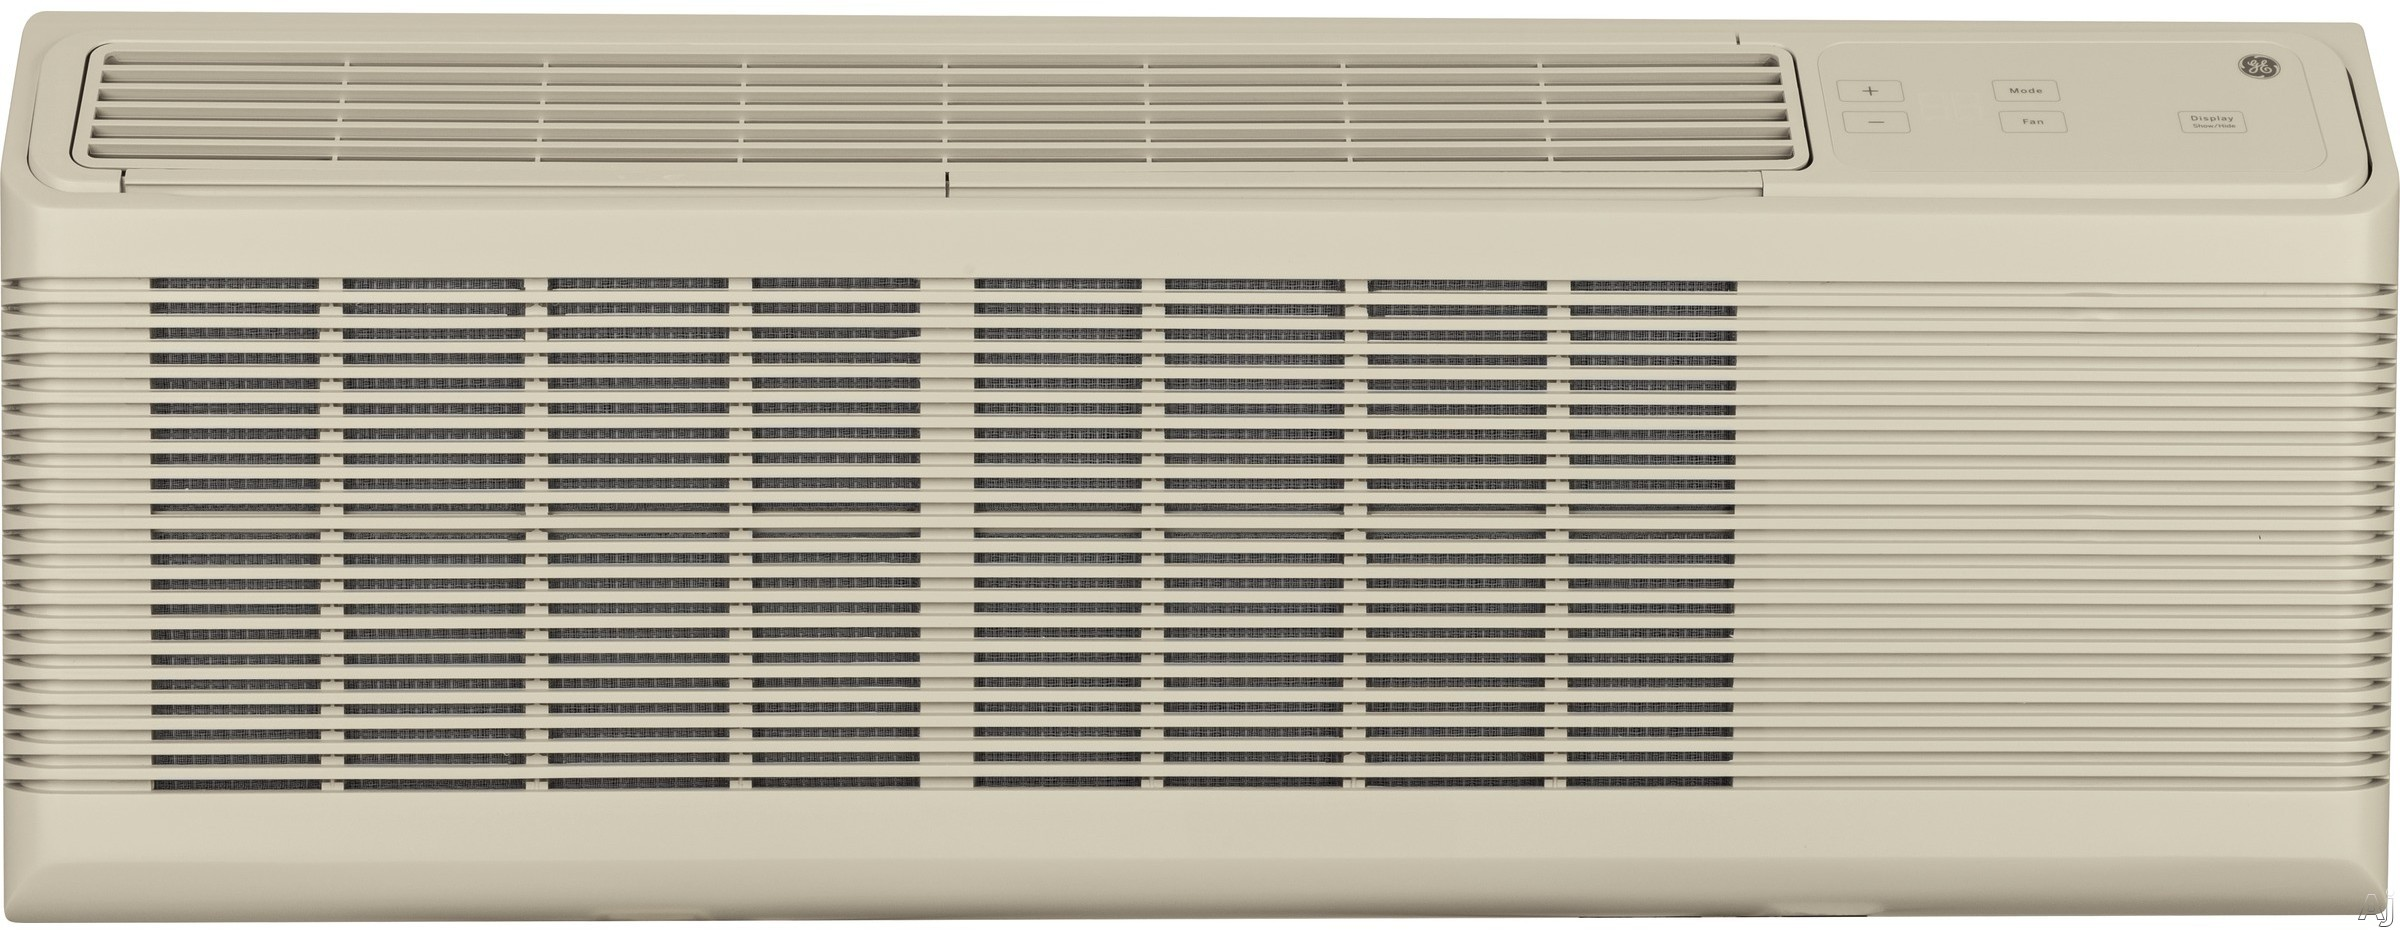 GE Zoneline AZ45E12EAP 11,000 BTU Packaged Terminal Air Conditioner with Electric Heat, Dry Air 25, Corrosion Protection, 11 EER, 4.2 Pints Per Hour Dehumidification, R410A Refrigerant and 265 Volt AZ45E12EAP